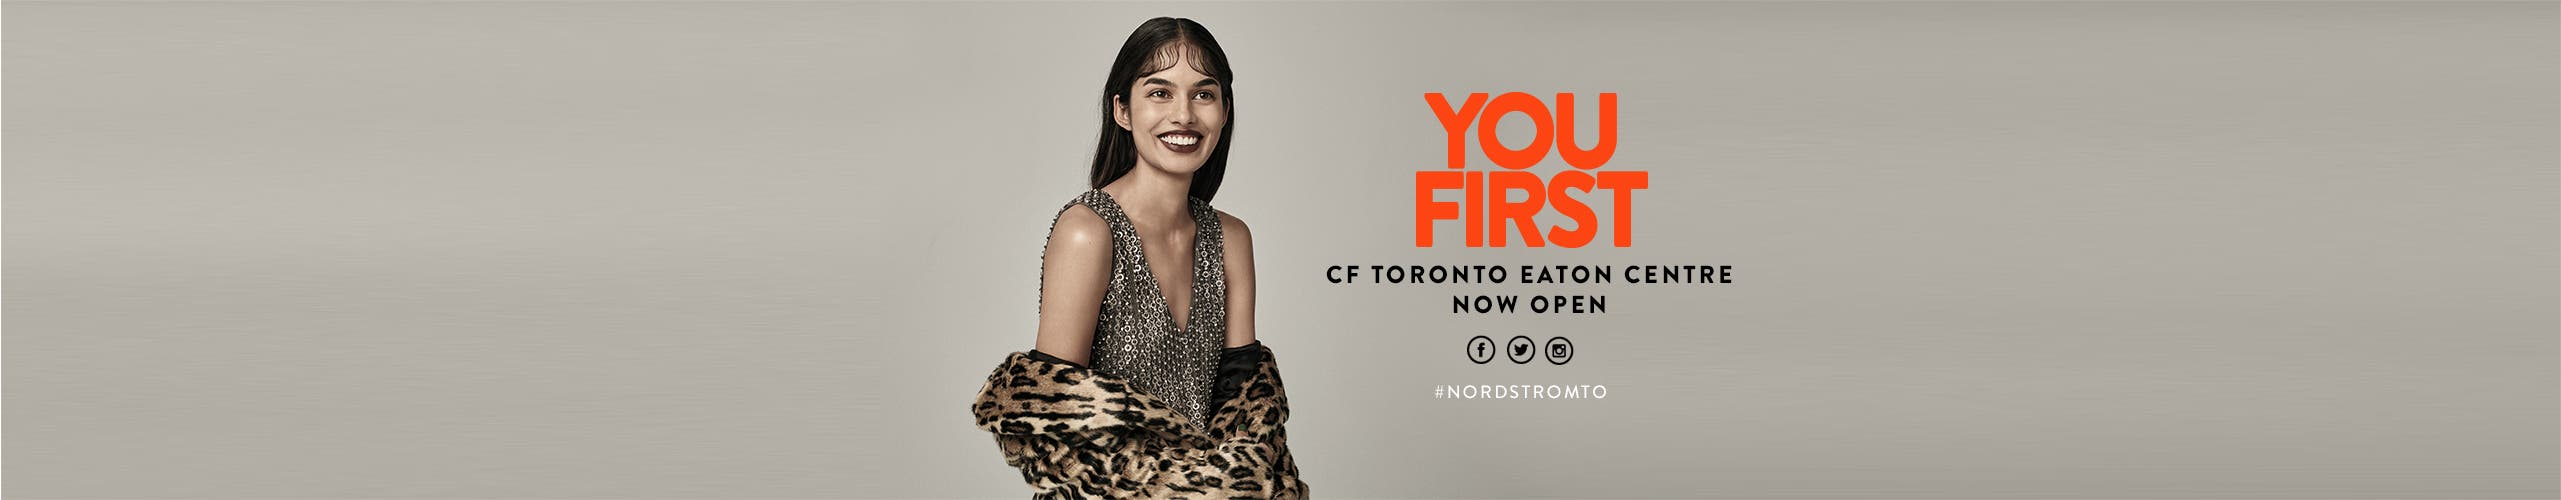 Nordstrom at CF Toronto Eaton Centre is now open.